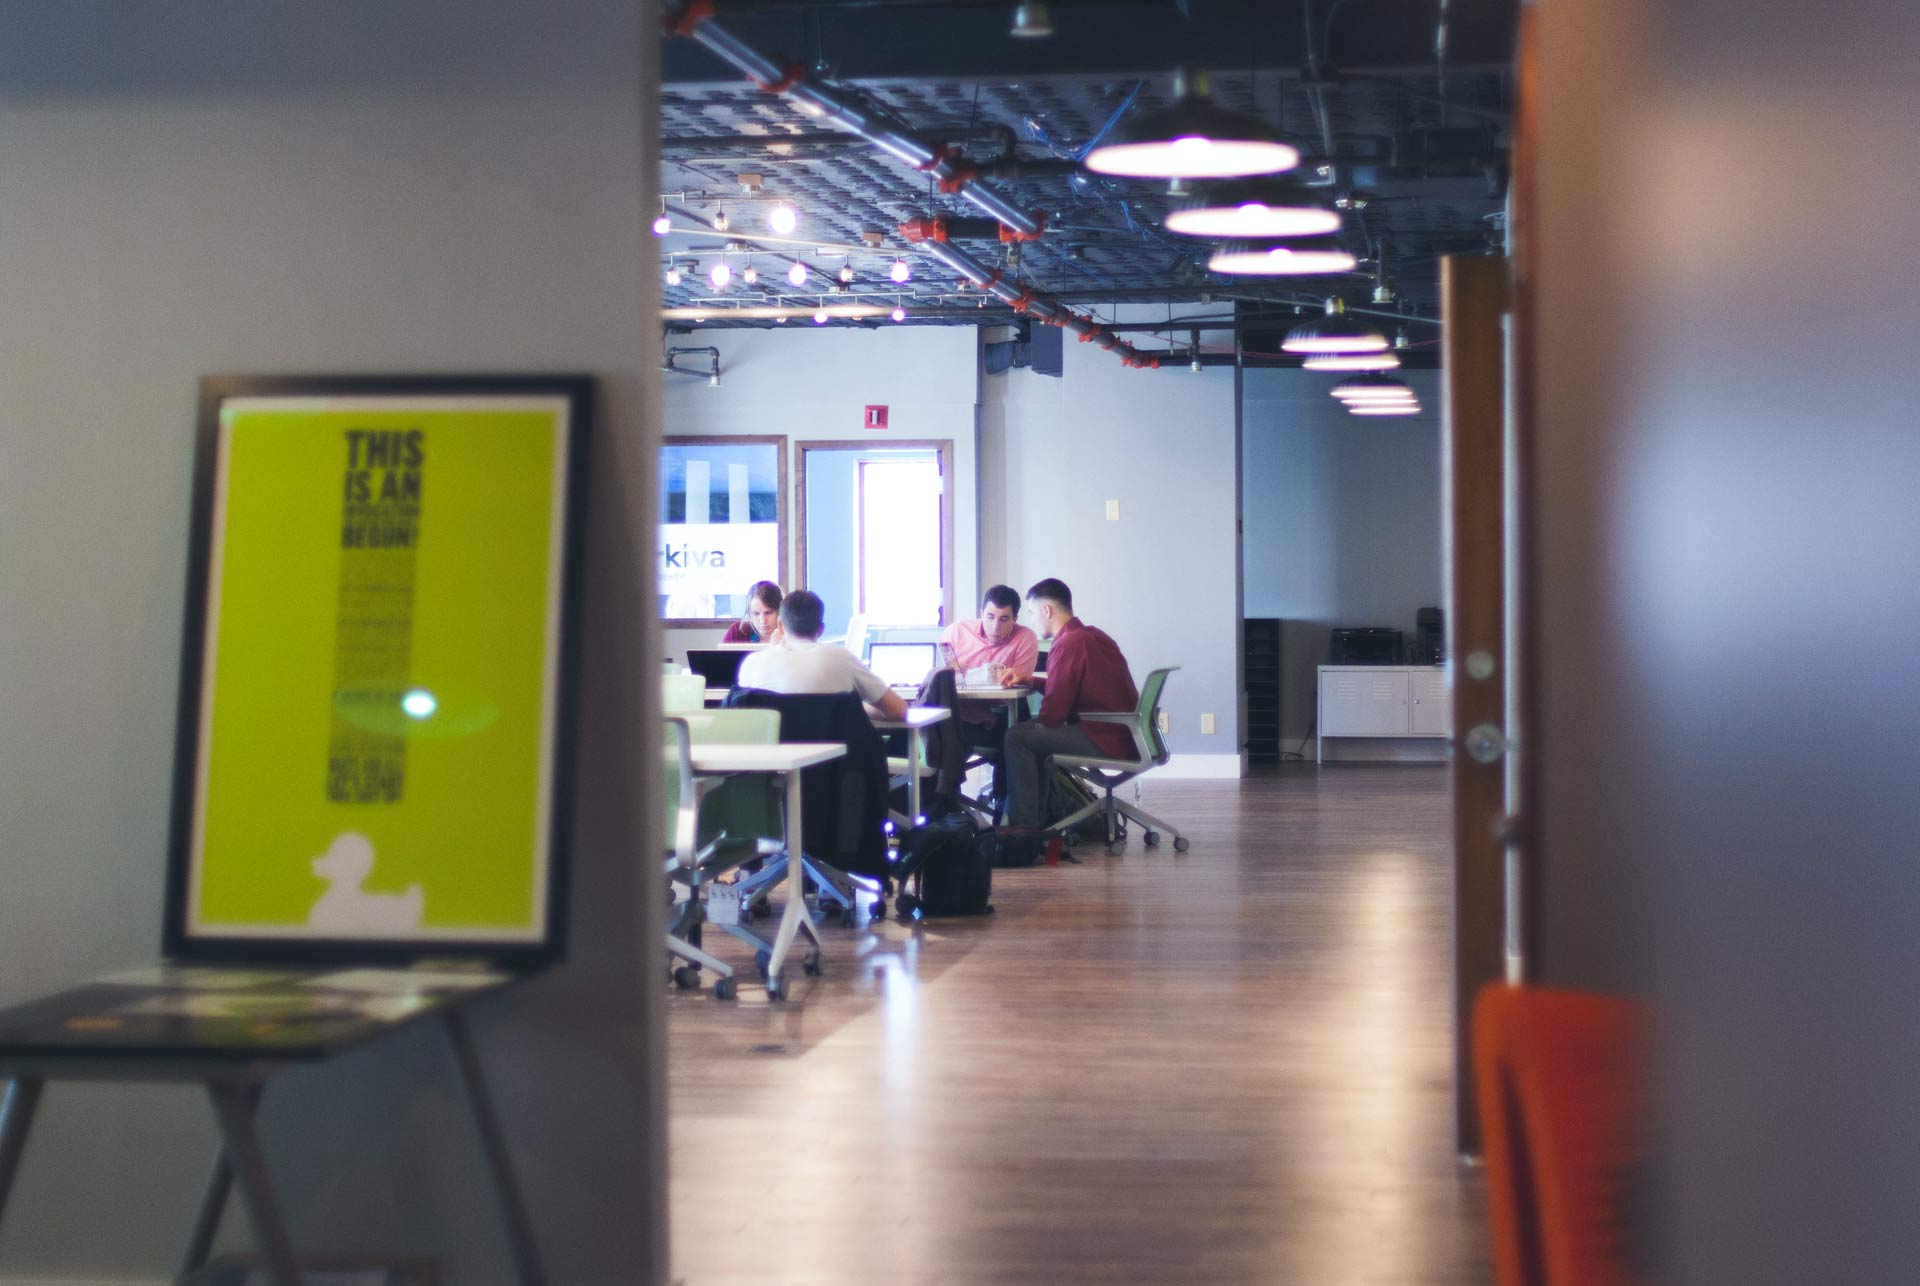 seo company offices and employees